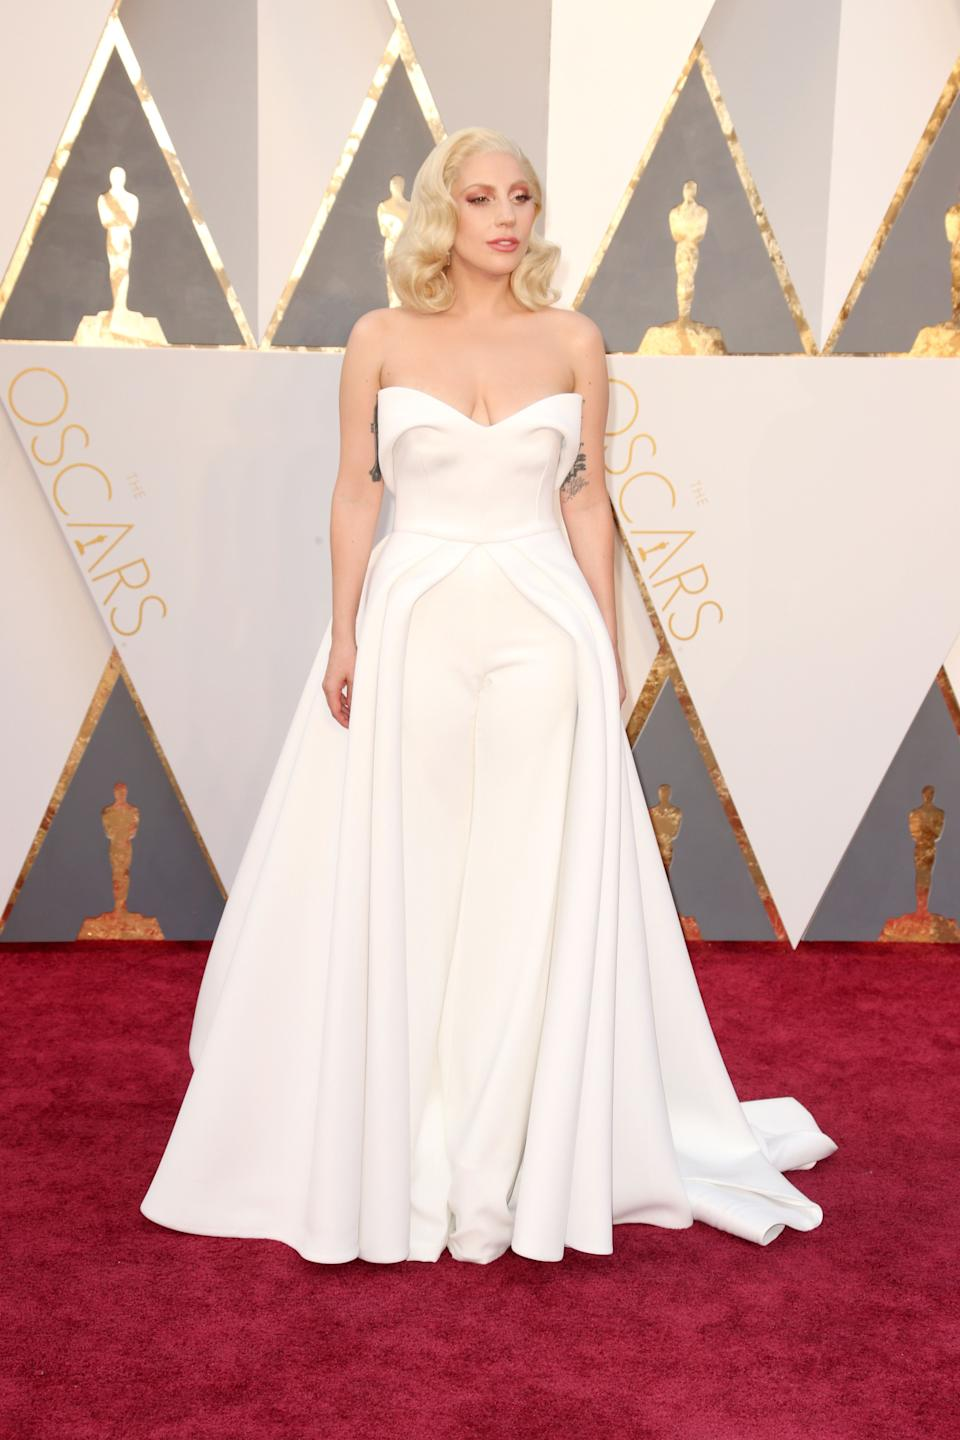 Gaga stuns in a structured white look by Brandon Maxwell at the 2016 Academy Awards in Hollywood.